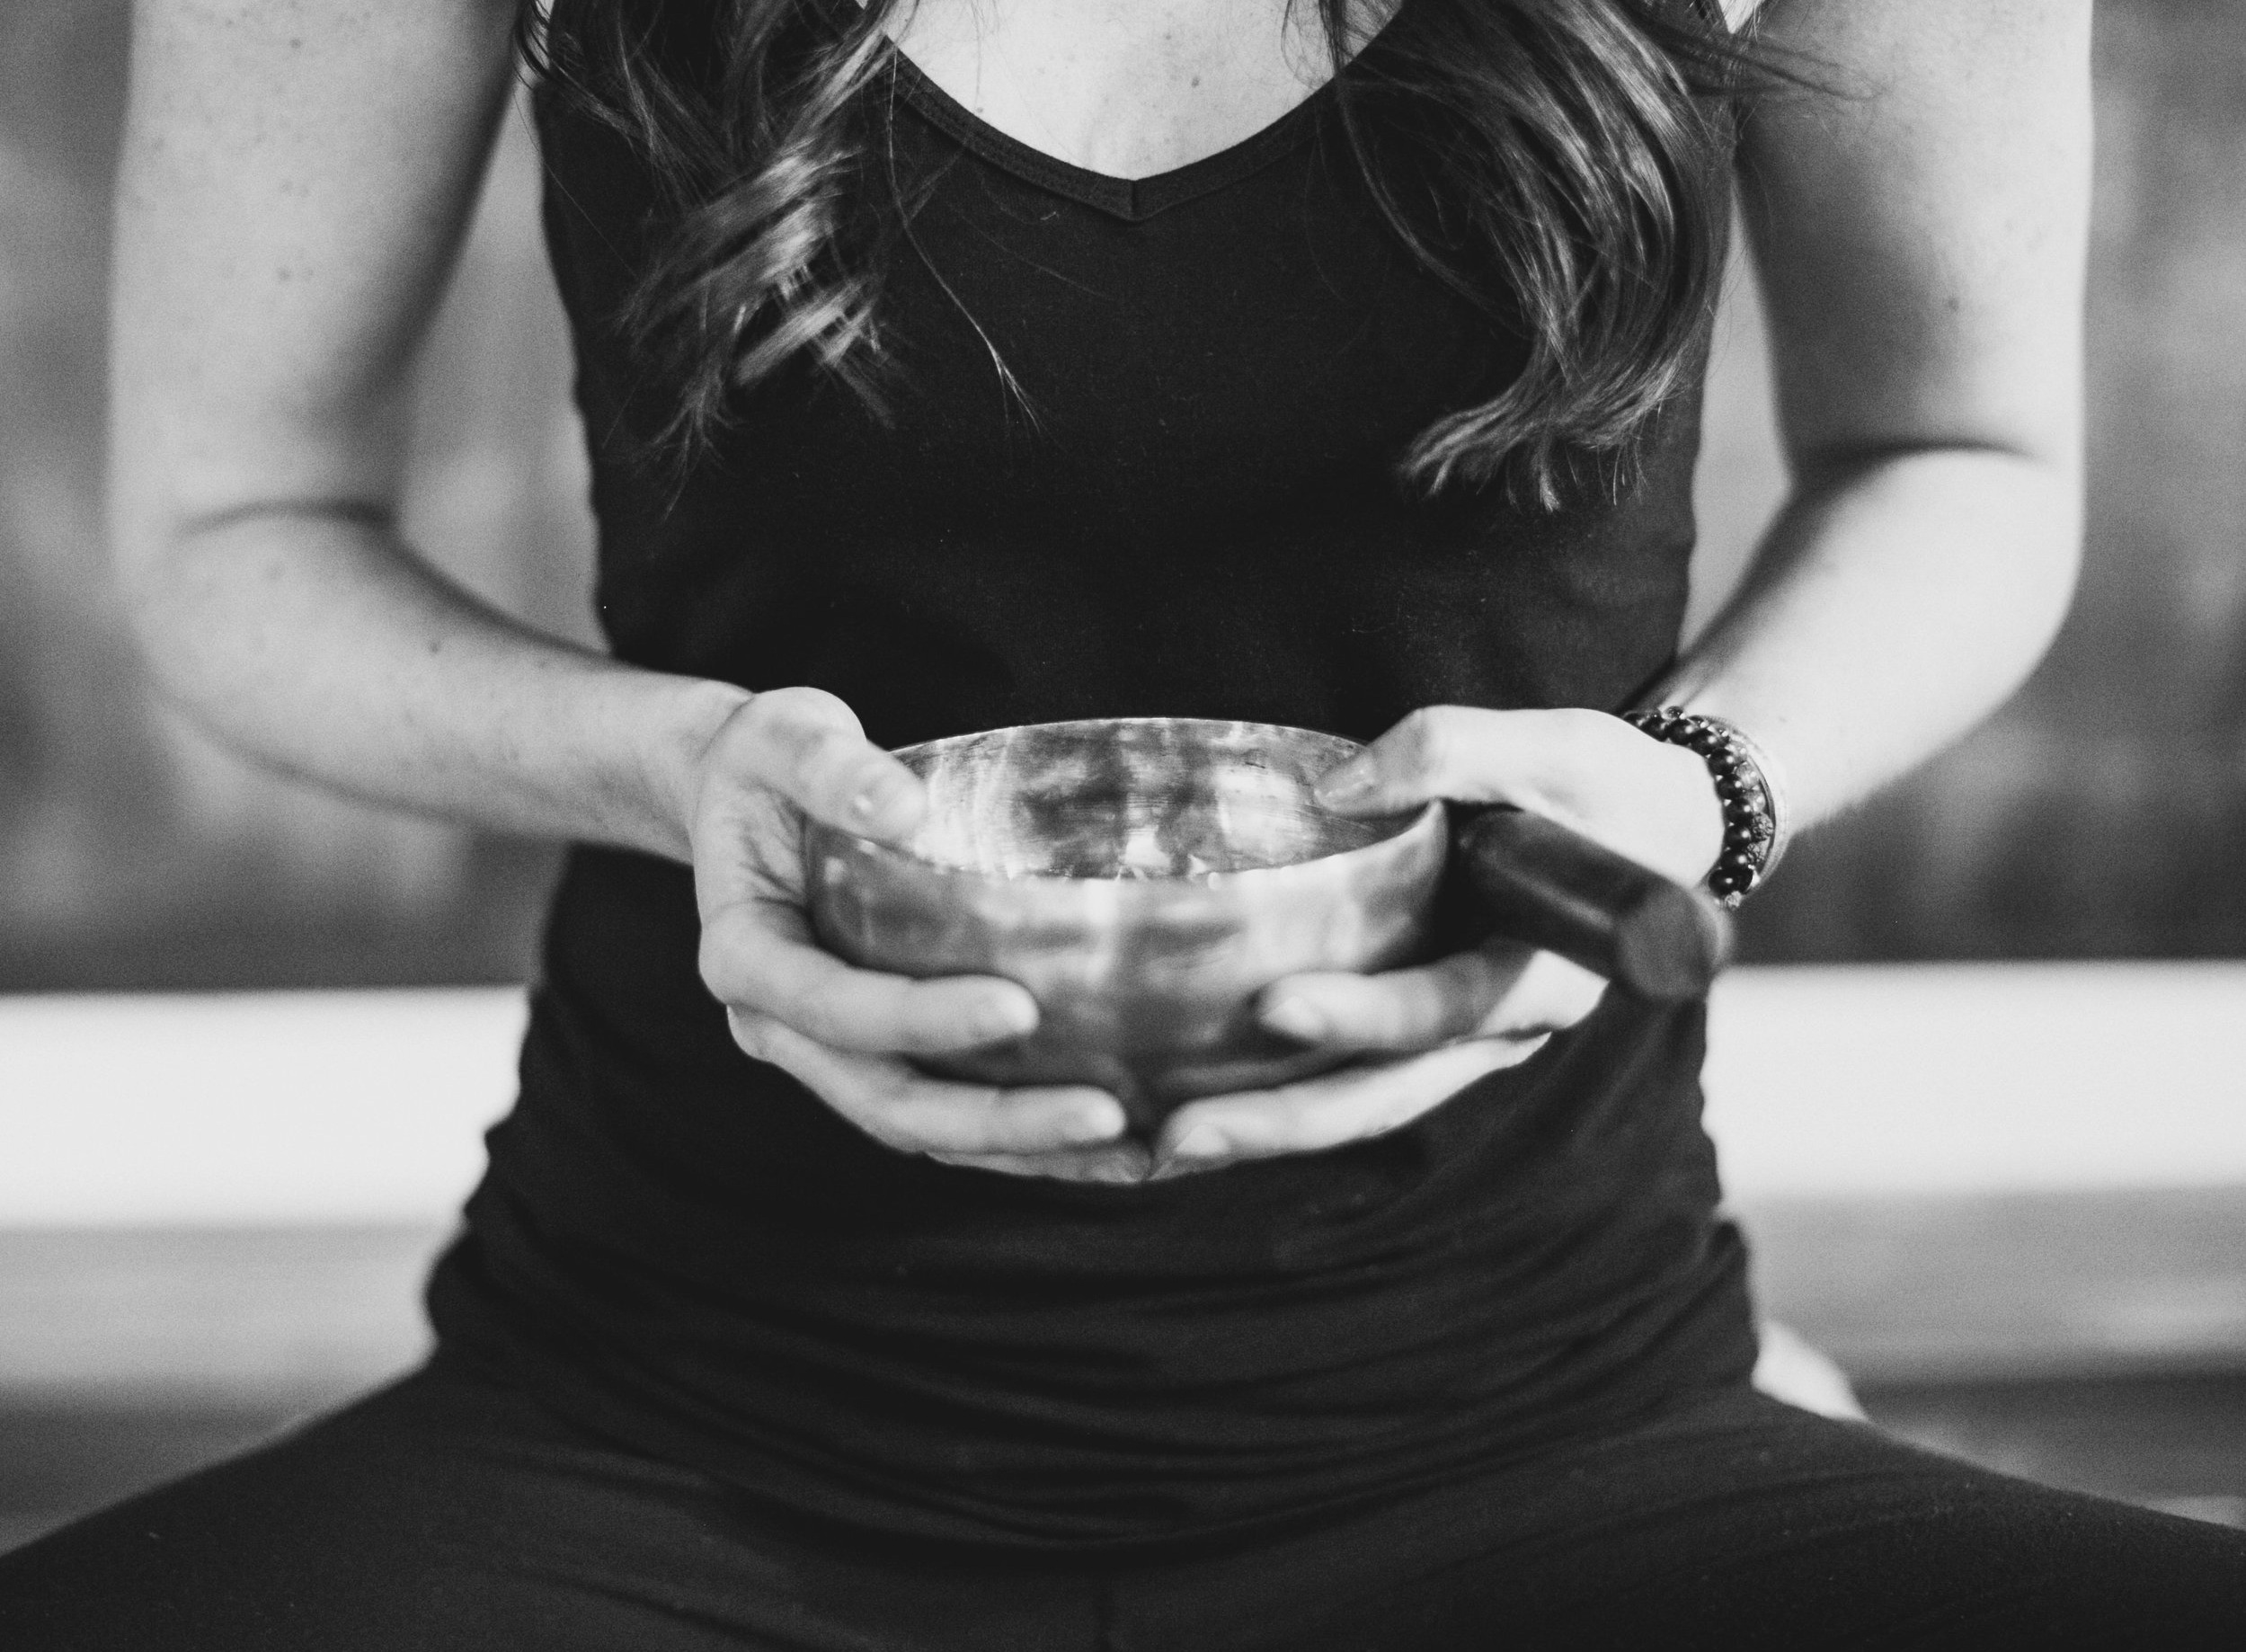 - The mission of Nourish Holistic Wellness is to cultivate a community of sacred self-care and nourish the mind, body, and spirit connection.